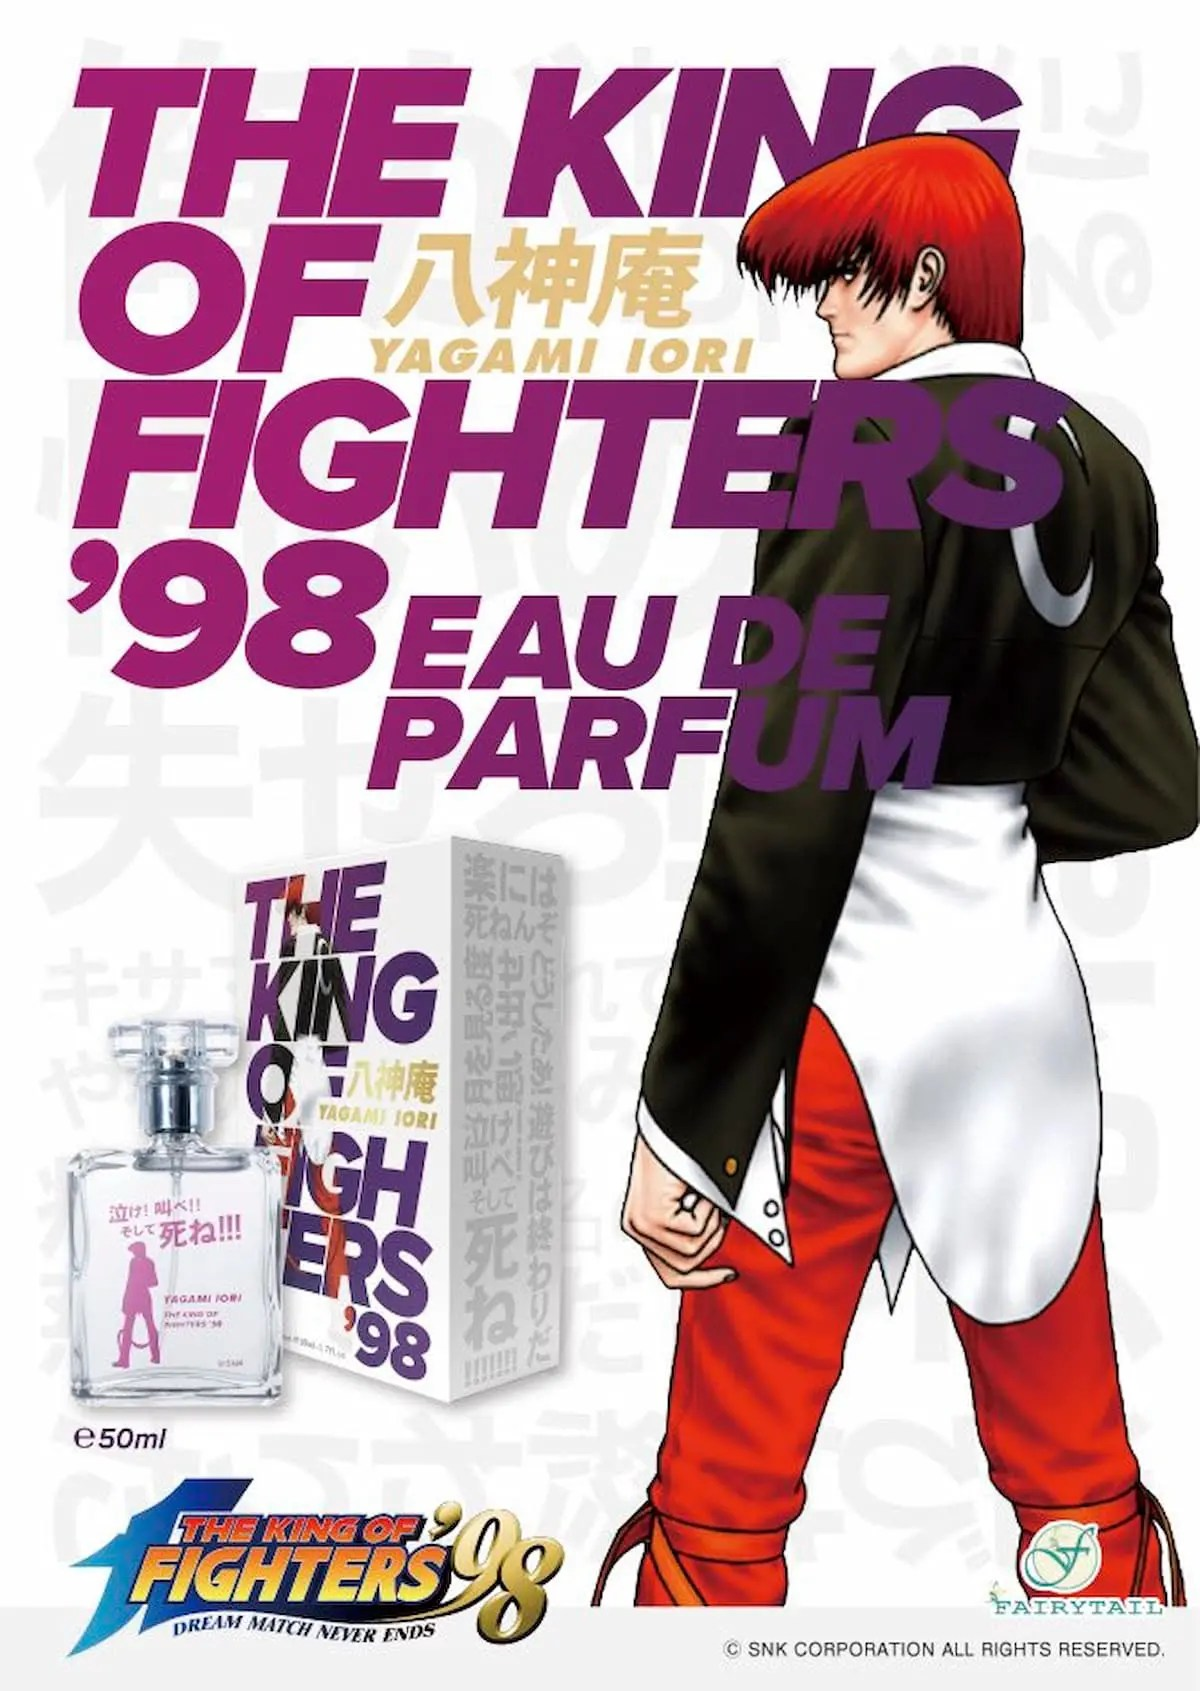 THE KING OF FIGHTERS '98 オードパルファム 八神庵